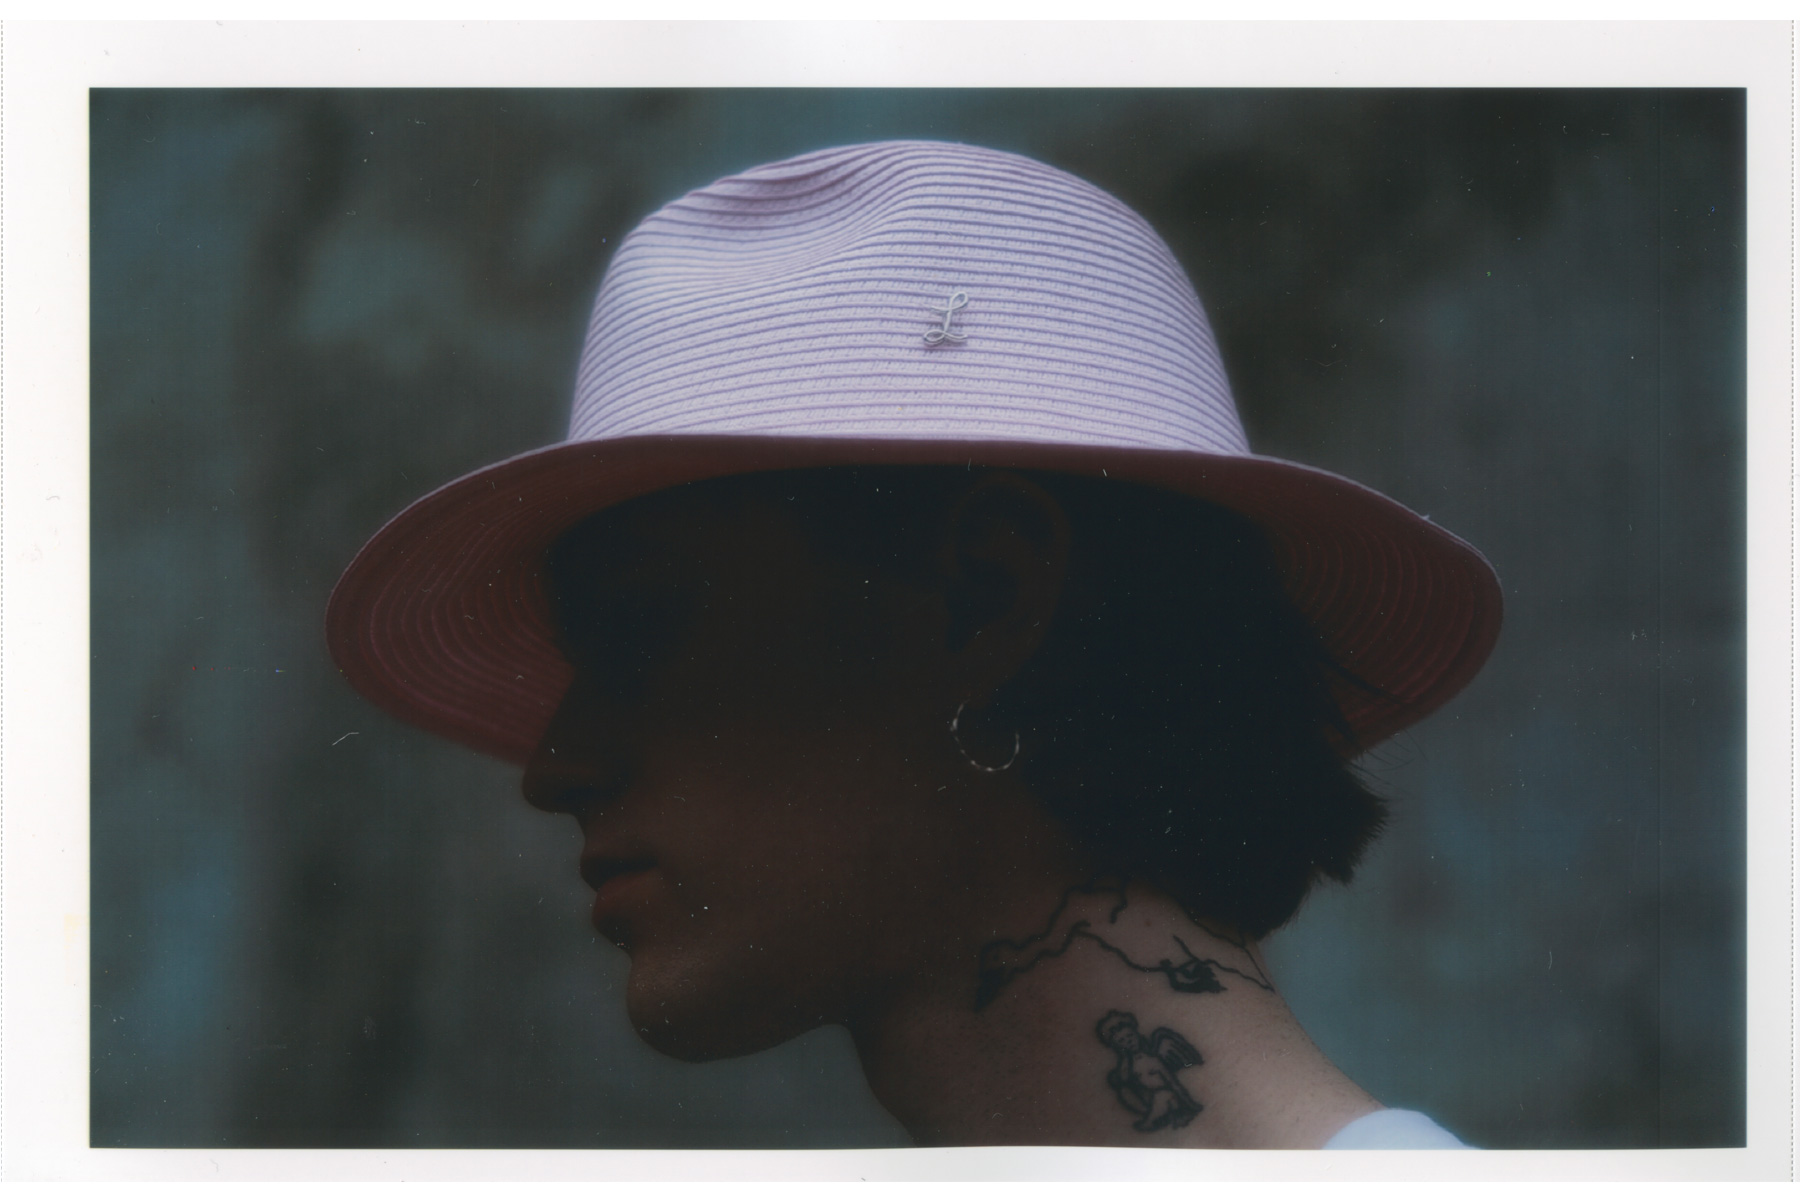 Larose Paris Spring Summer 2018 hats Lookbook collection purchase baseball cap 5 panel panama fedora traveler